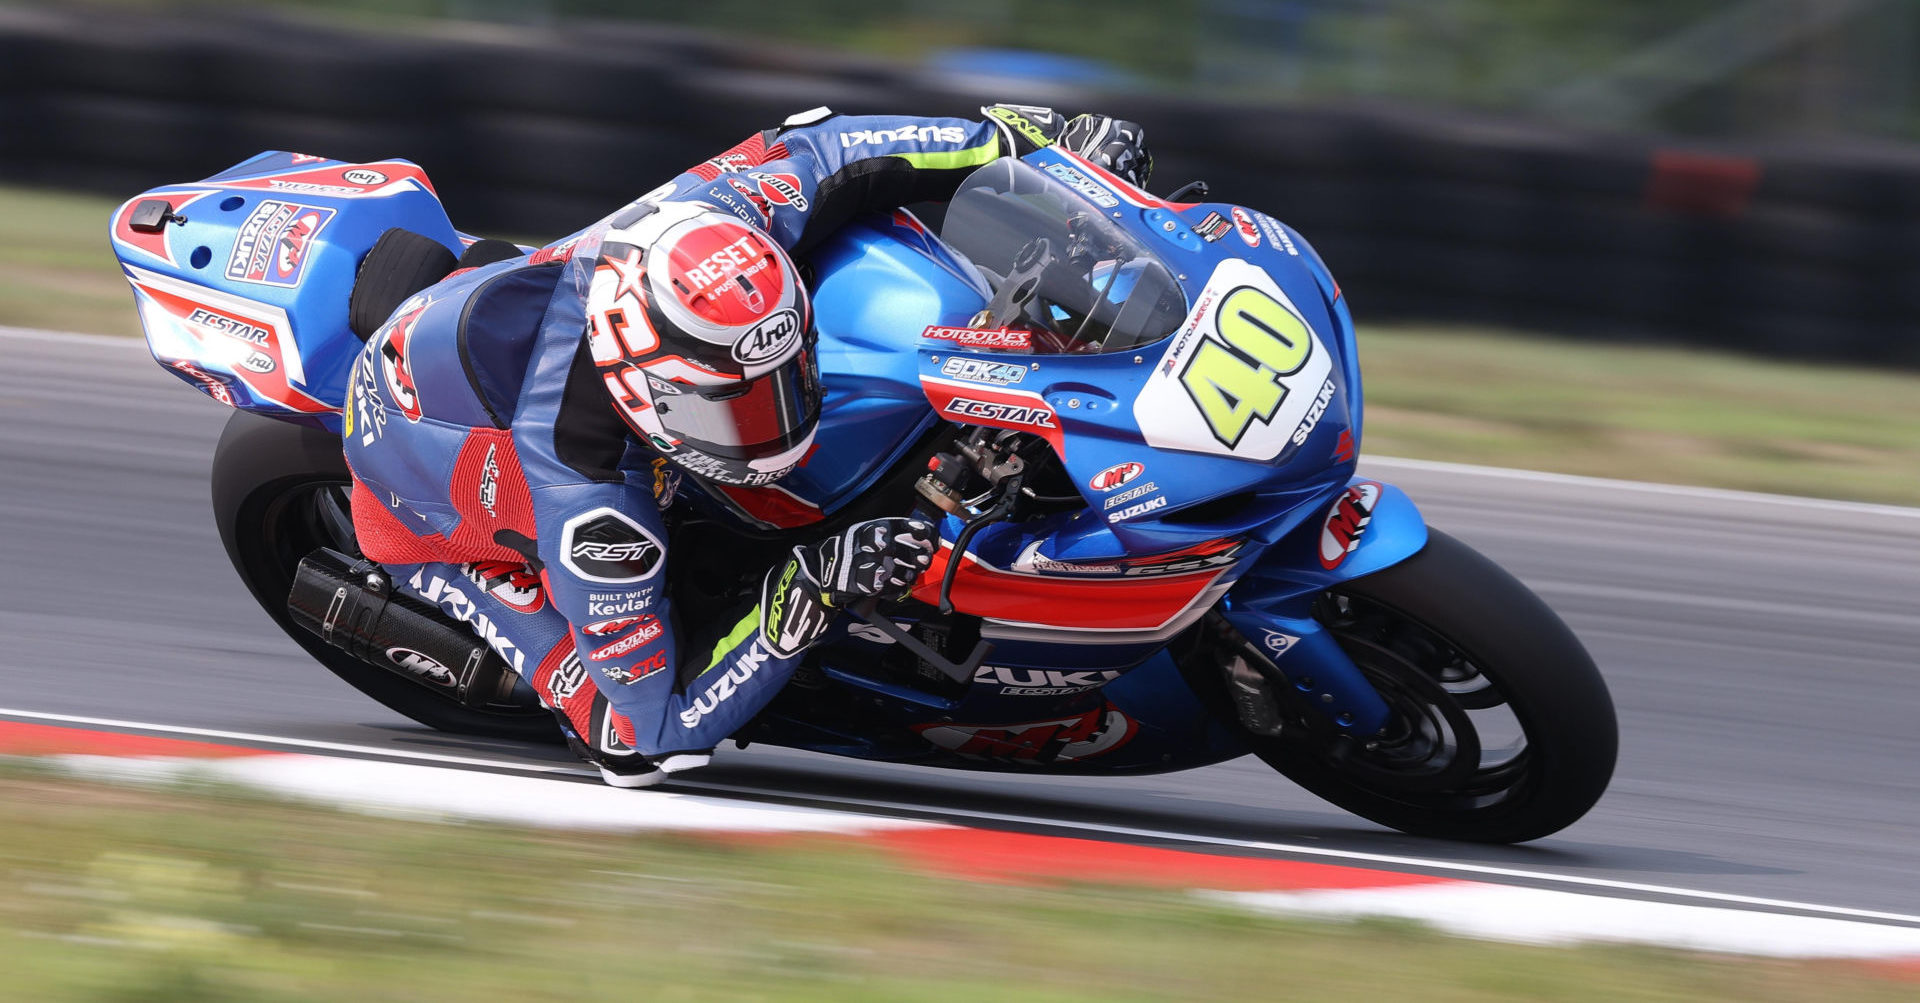 Sean Dylan Kelly (40) delivered two impressive wins and increased his lead in the Championship. Photo by Brian J. Nelson, courtesy Suzuki Motor USA, LLC.